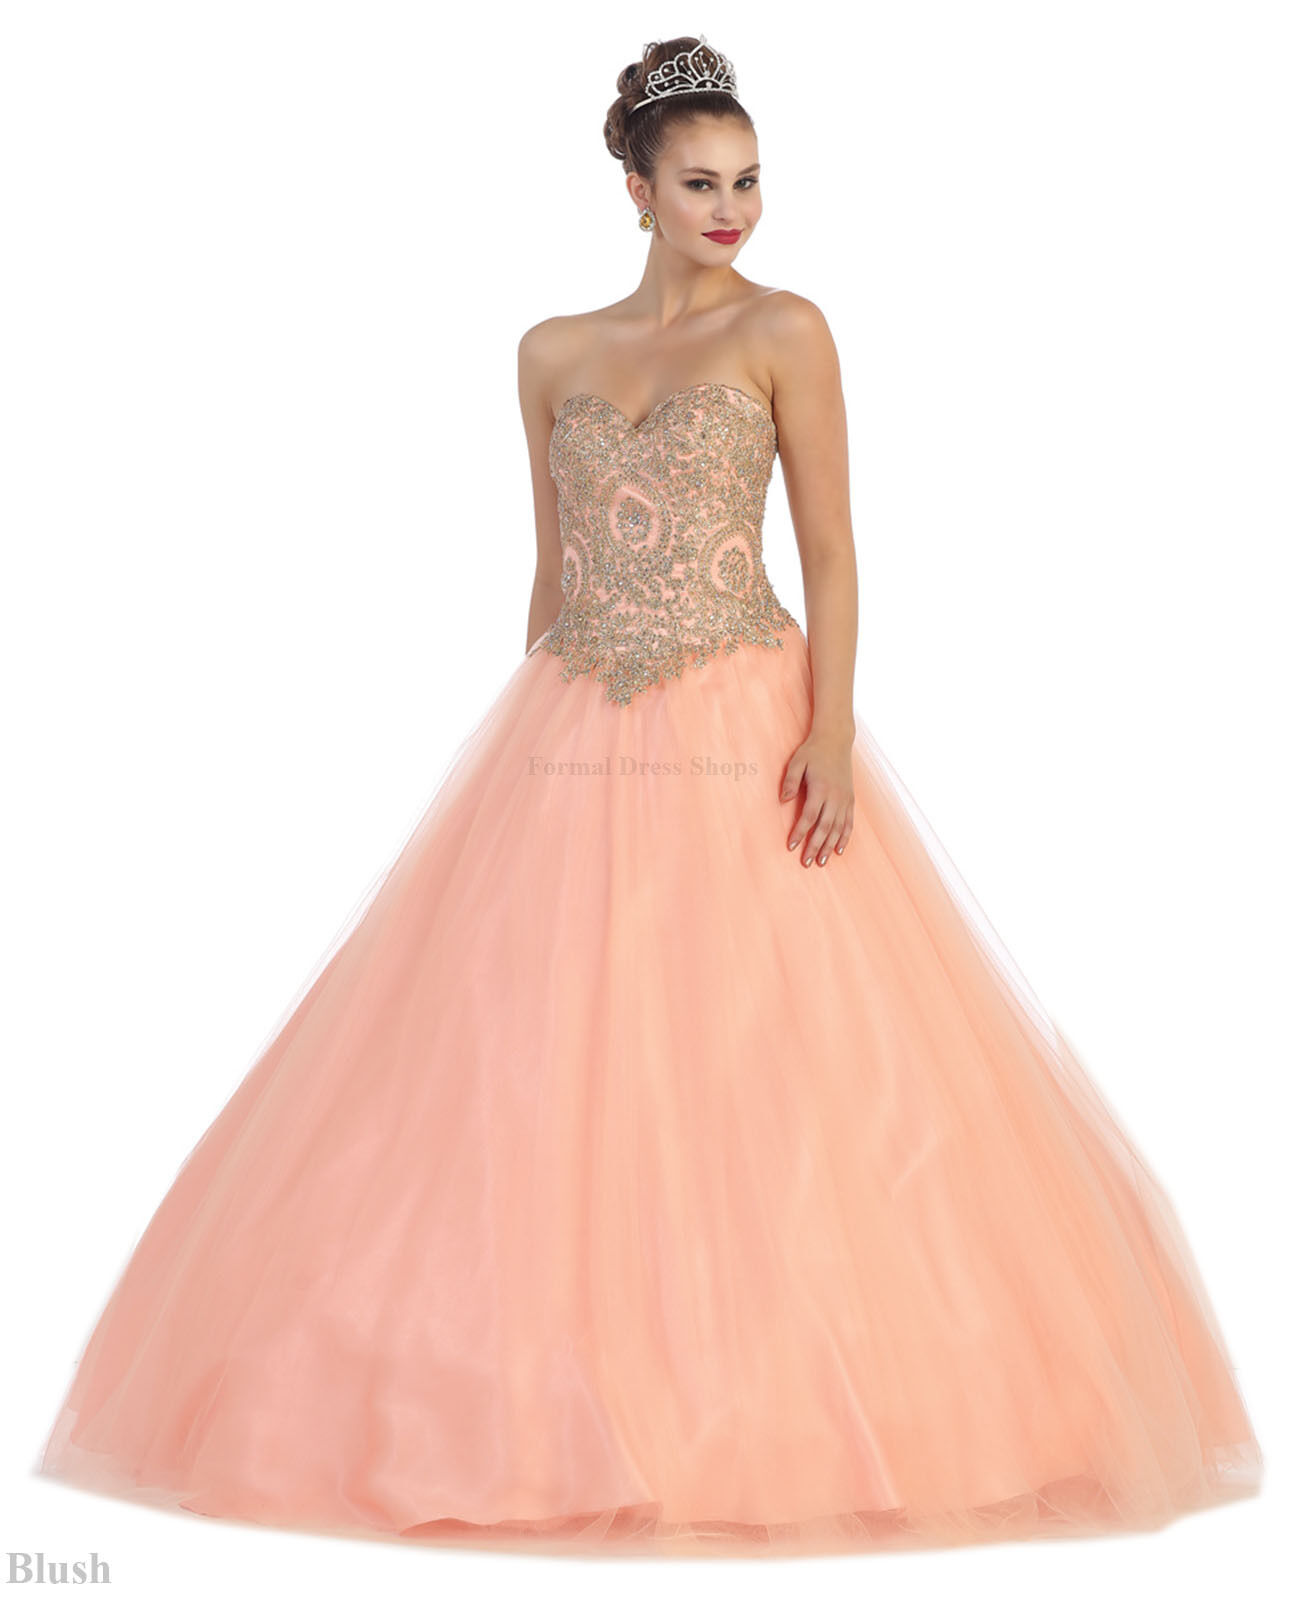 d7cc84c5b68 Details about MILITARY BALL GOWN SWEET 16 DEBUTANTE MASQUERADE QUINCEANERA  DESIGNER PROM DRESS